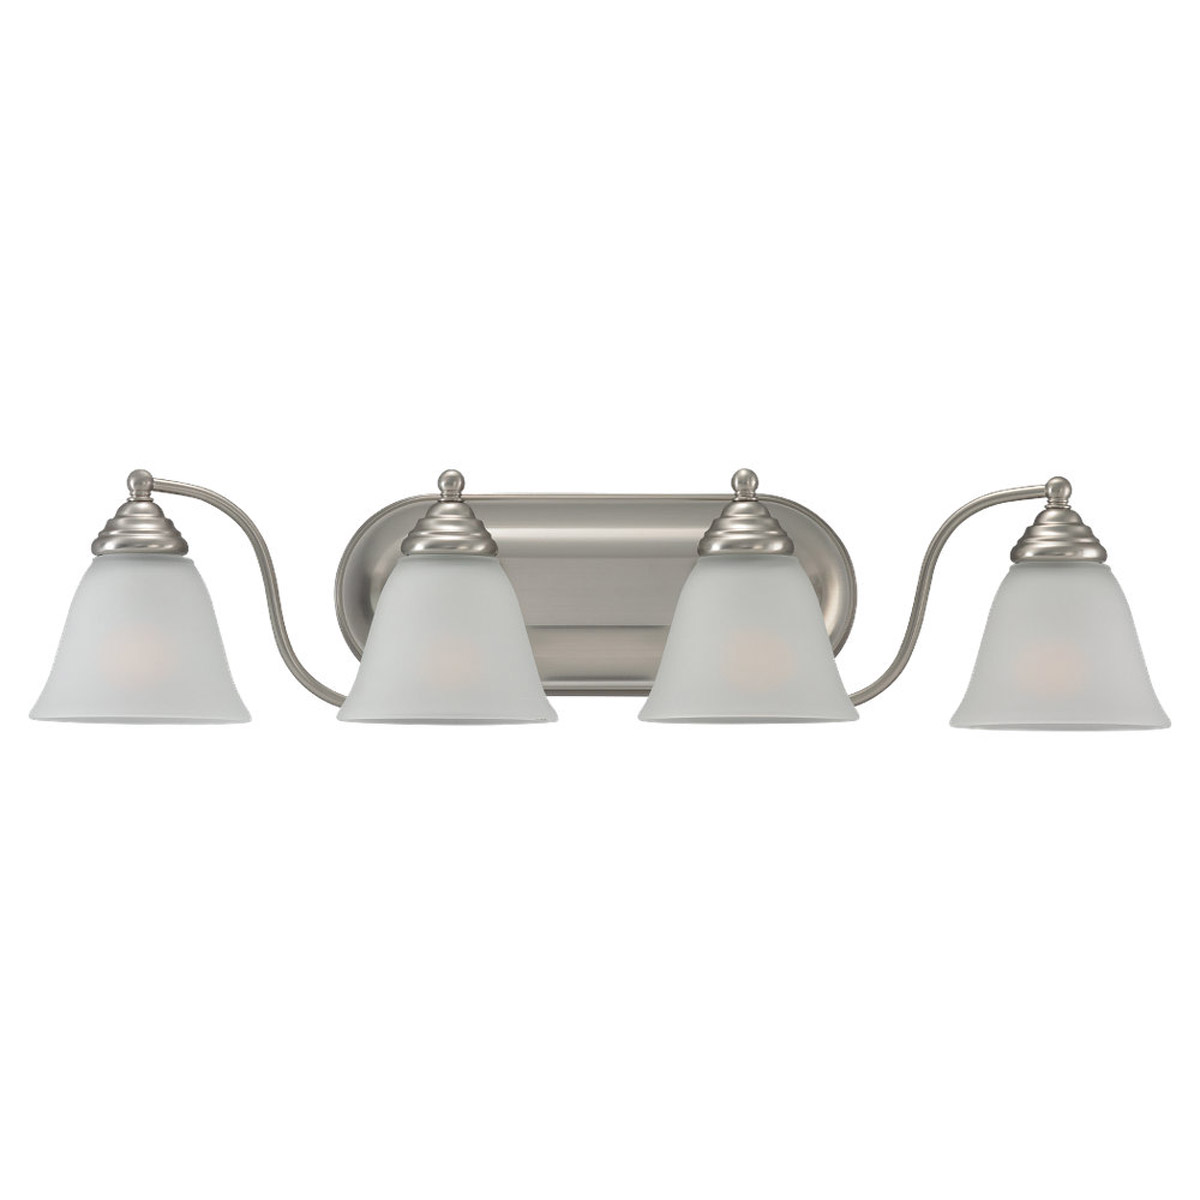 Sea Gull Lighting Albany 4 Light Bath Vanity in Brushed Nickel 44578-962 photo